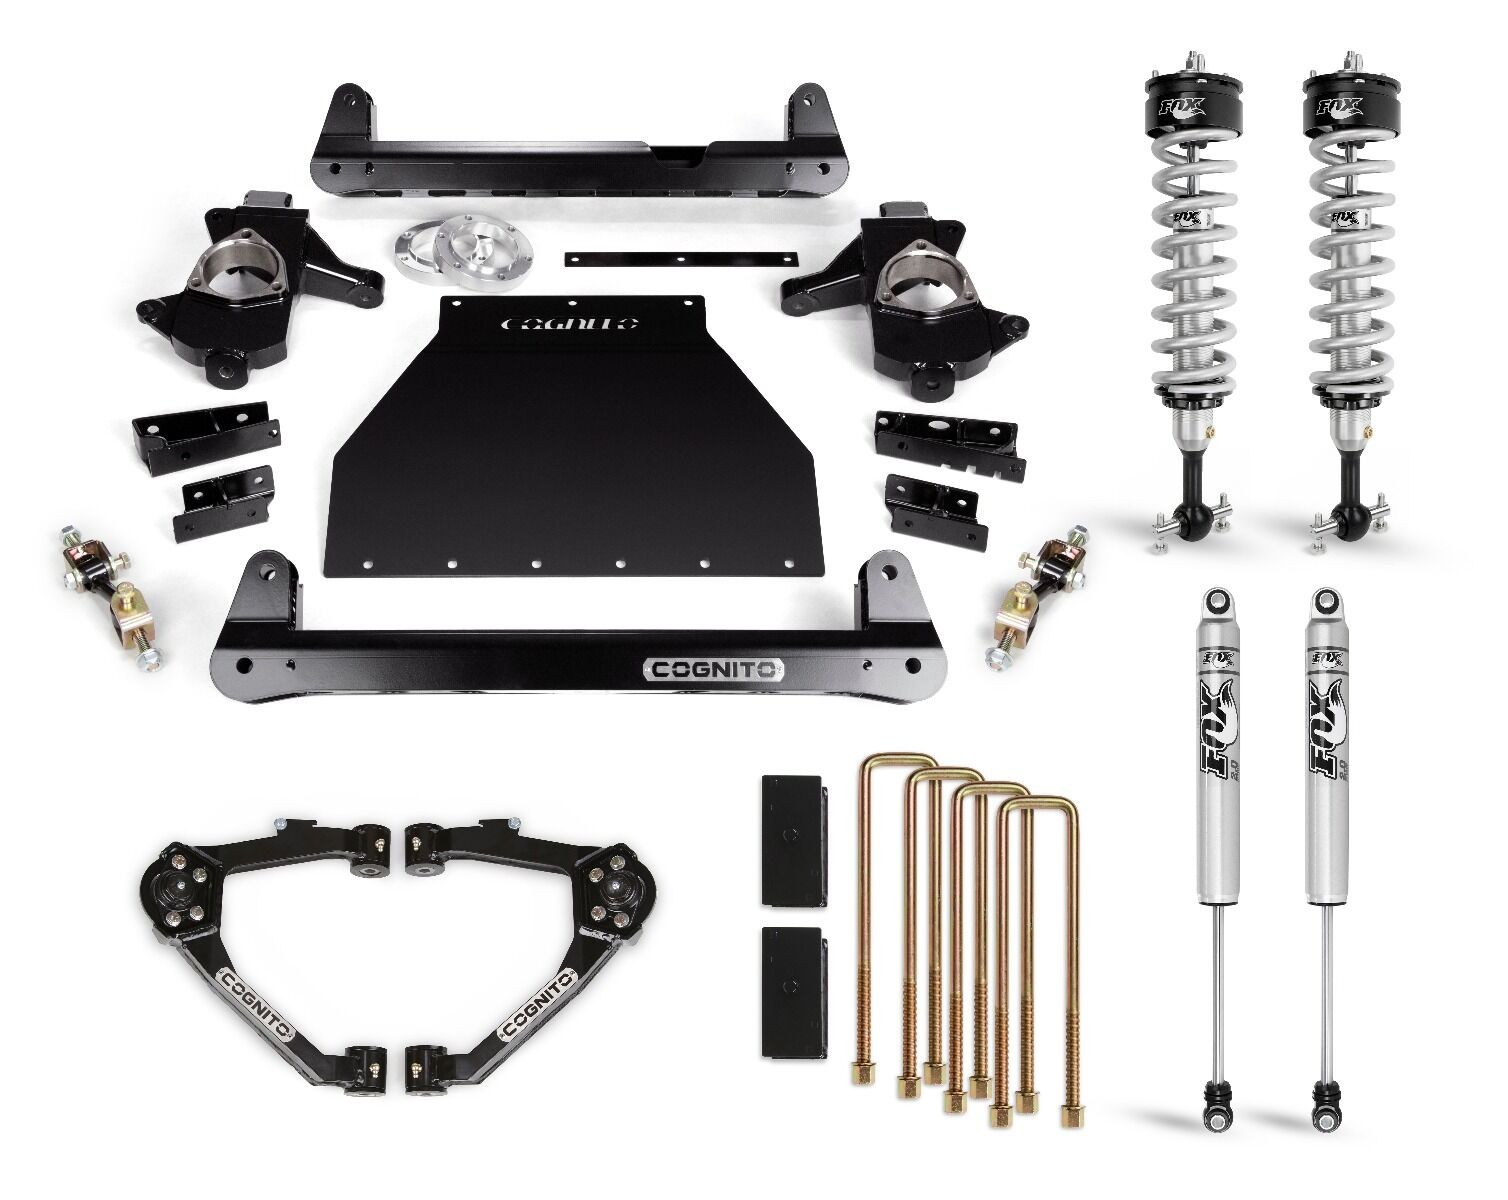 "Cognito 6"" Performance Lift Kit with Fox PS IFP 2.0 Shocks"